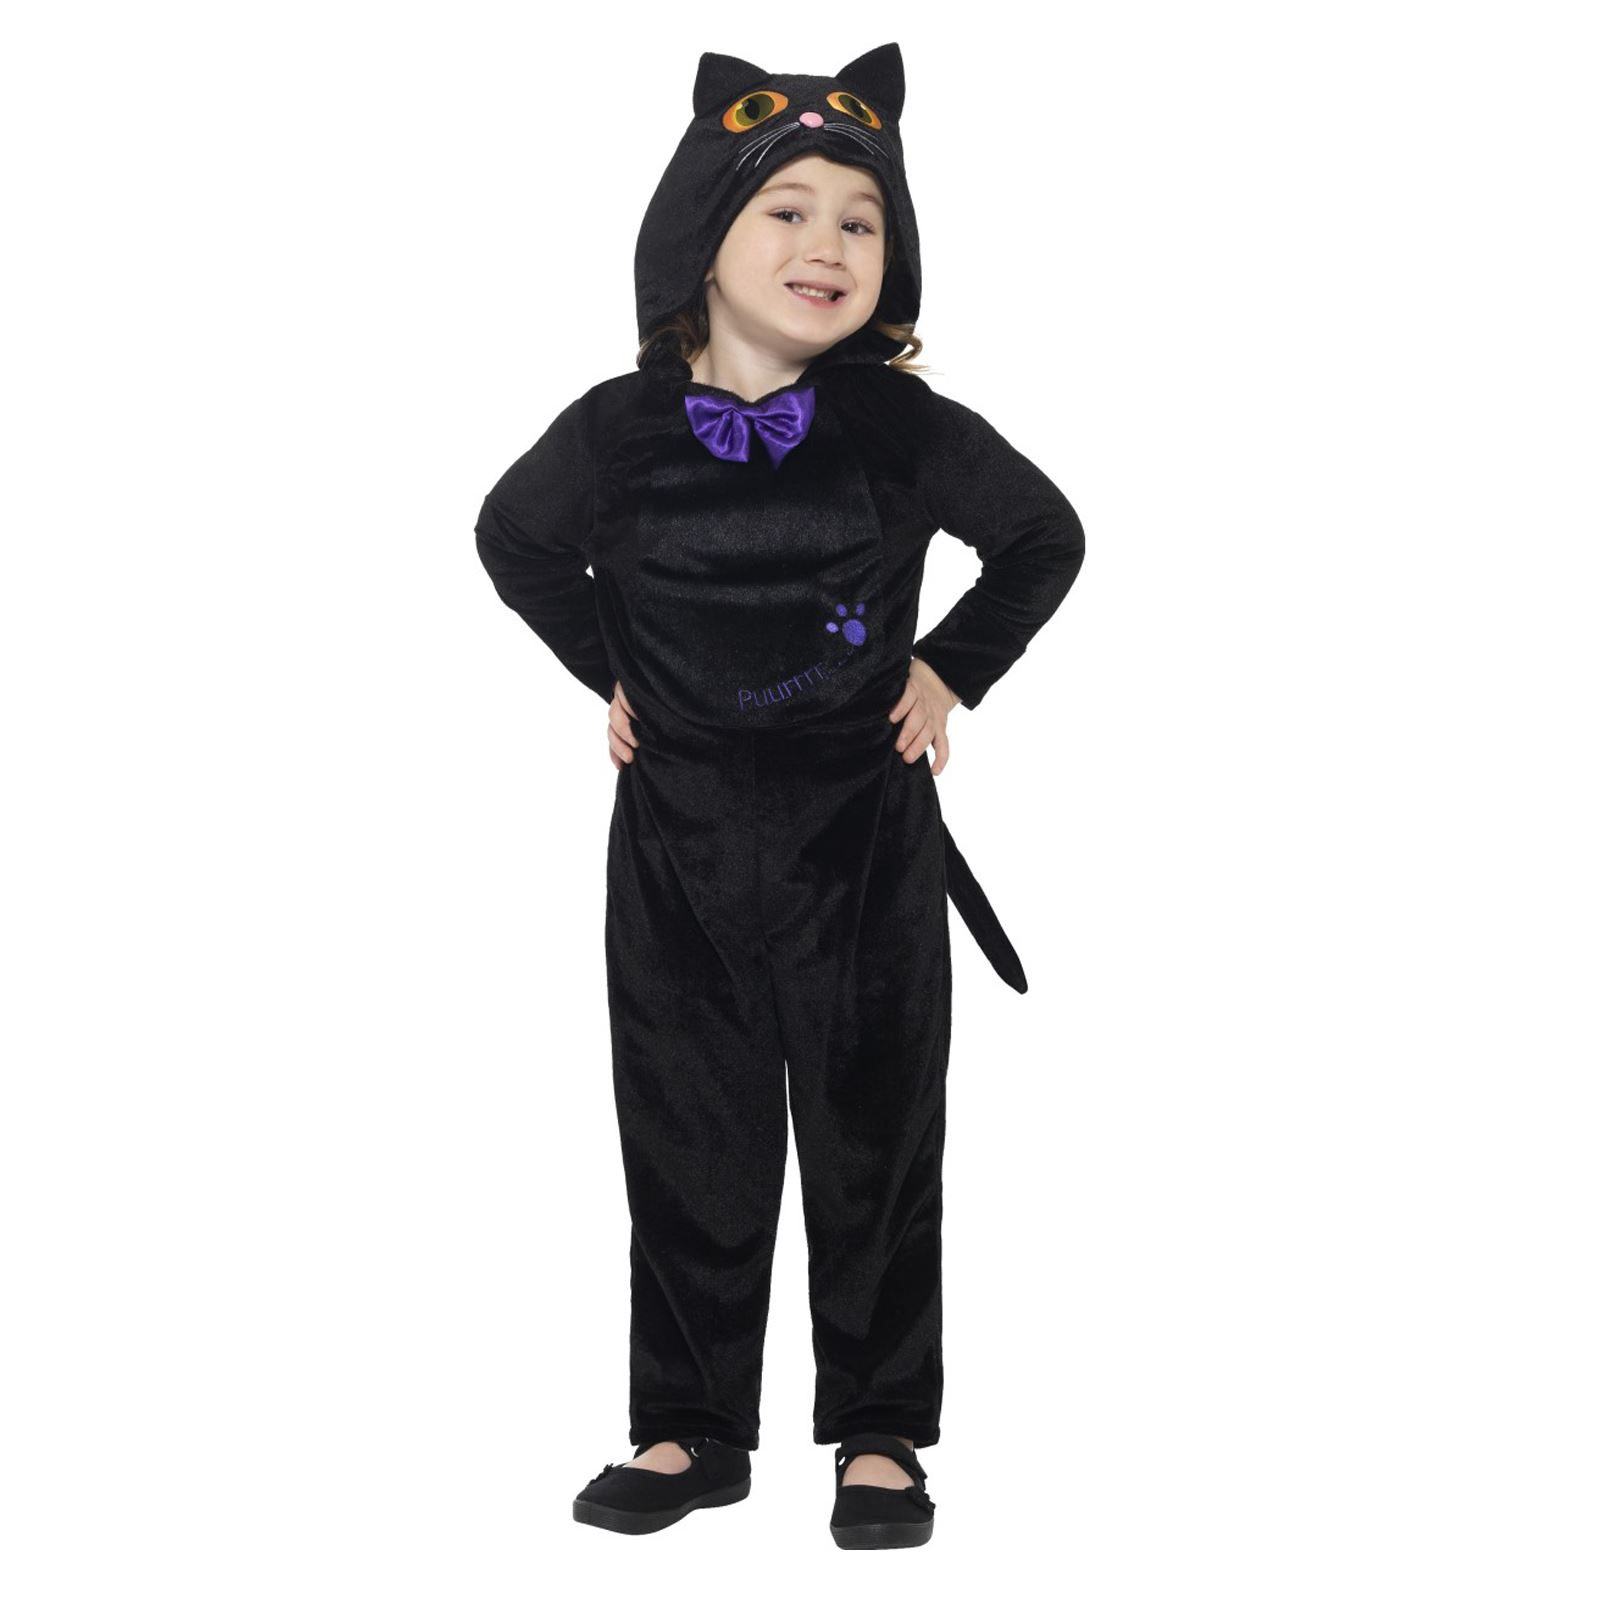 tout petits mignon chat noir halloween costume combinaison animaux enfant ebay. Black Bedroom Furniture Sets. Home Design Ideas